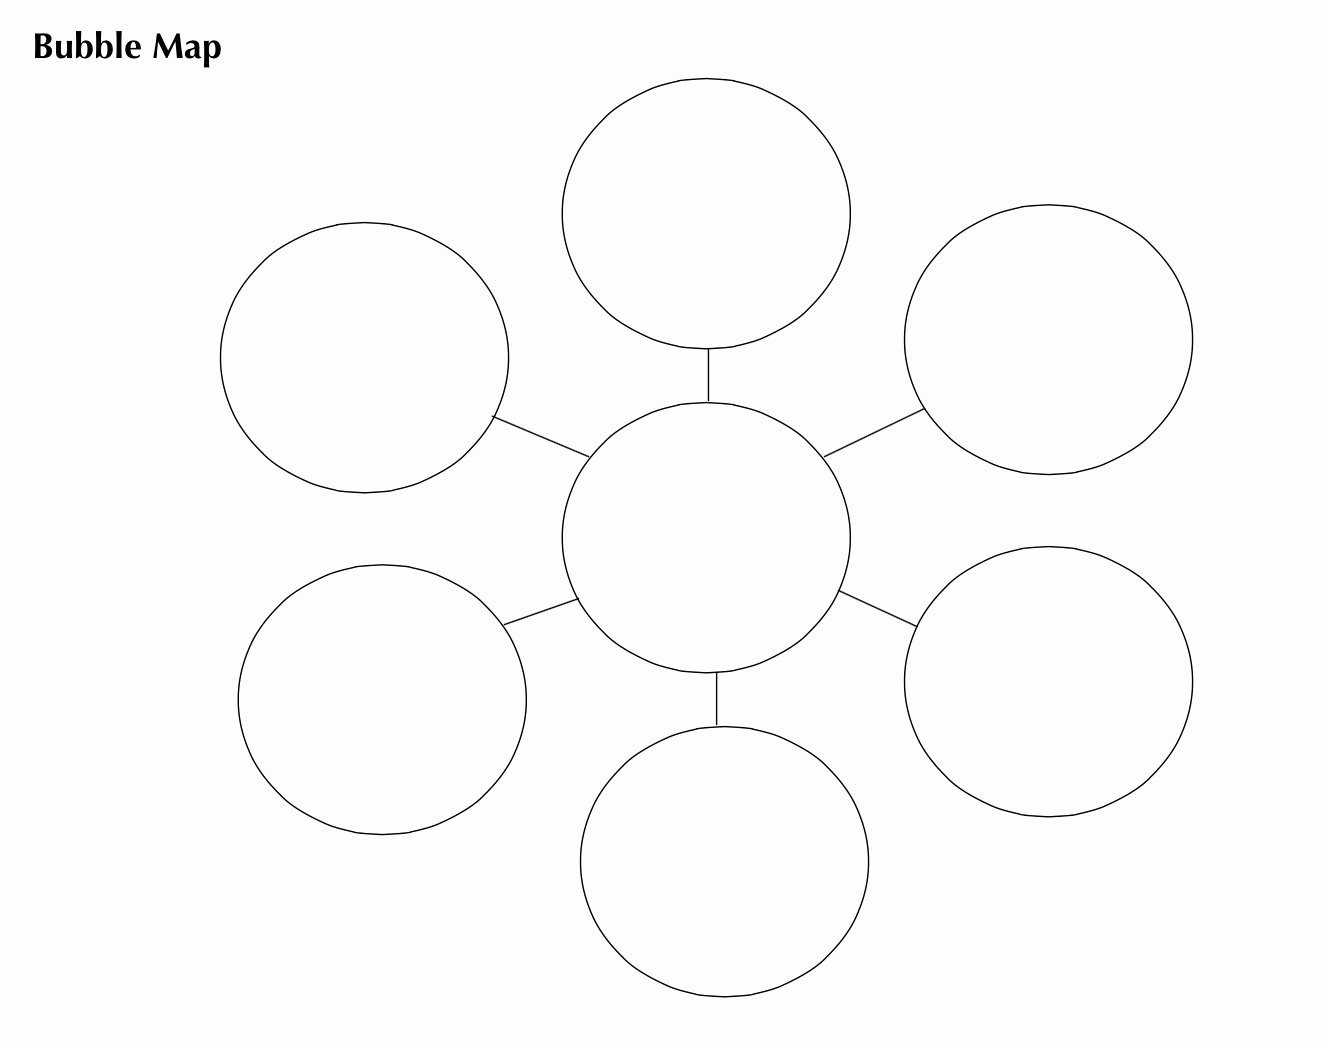 Bubble Map Template Word Unique Vocabulary Graphic organizers Bubble and Double Bubble